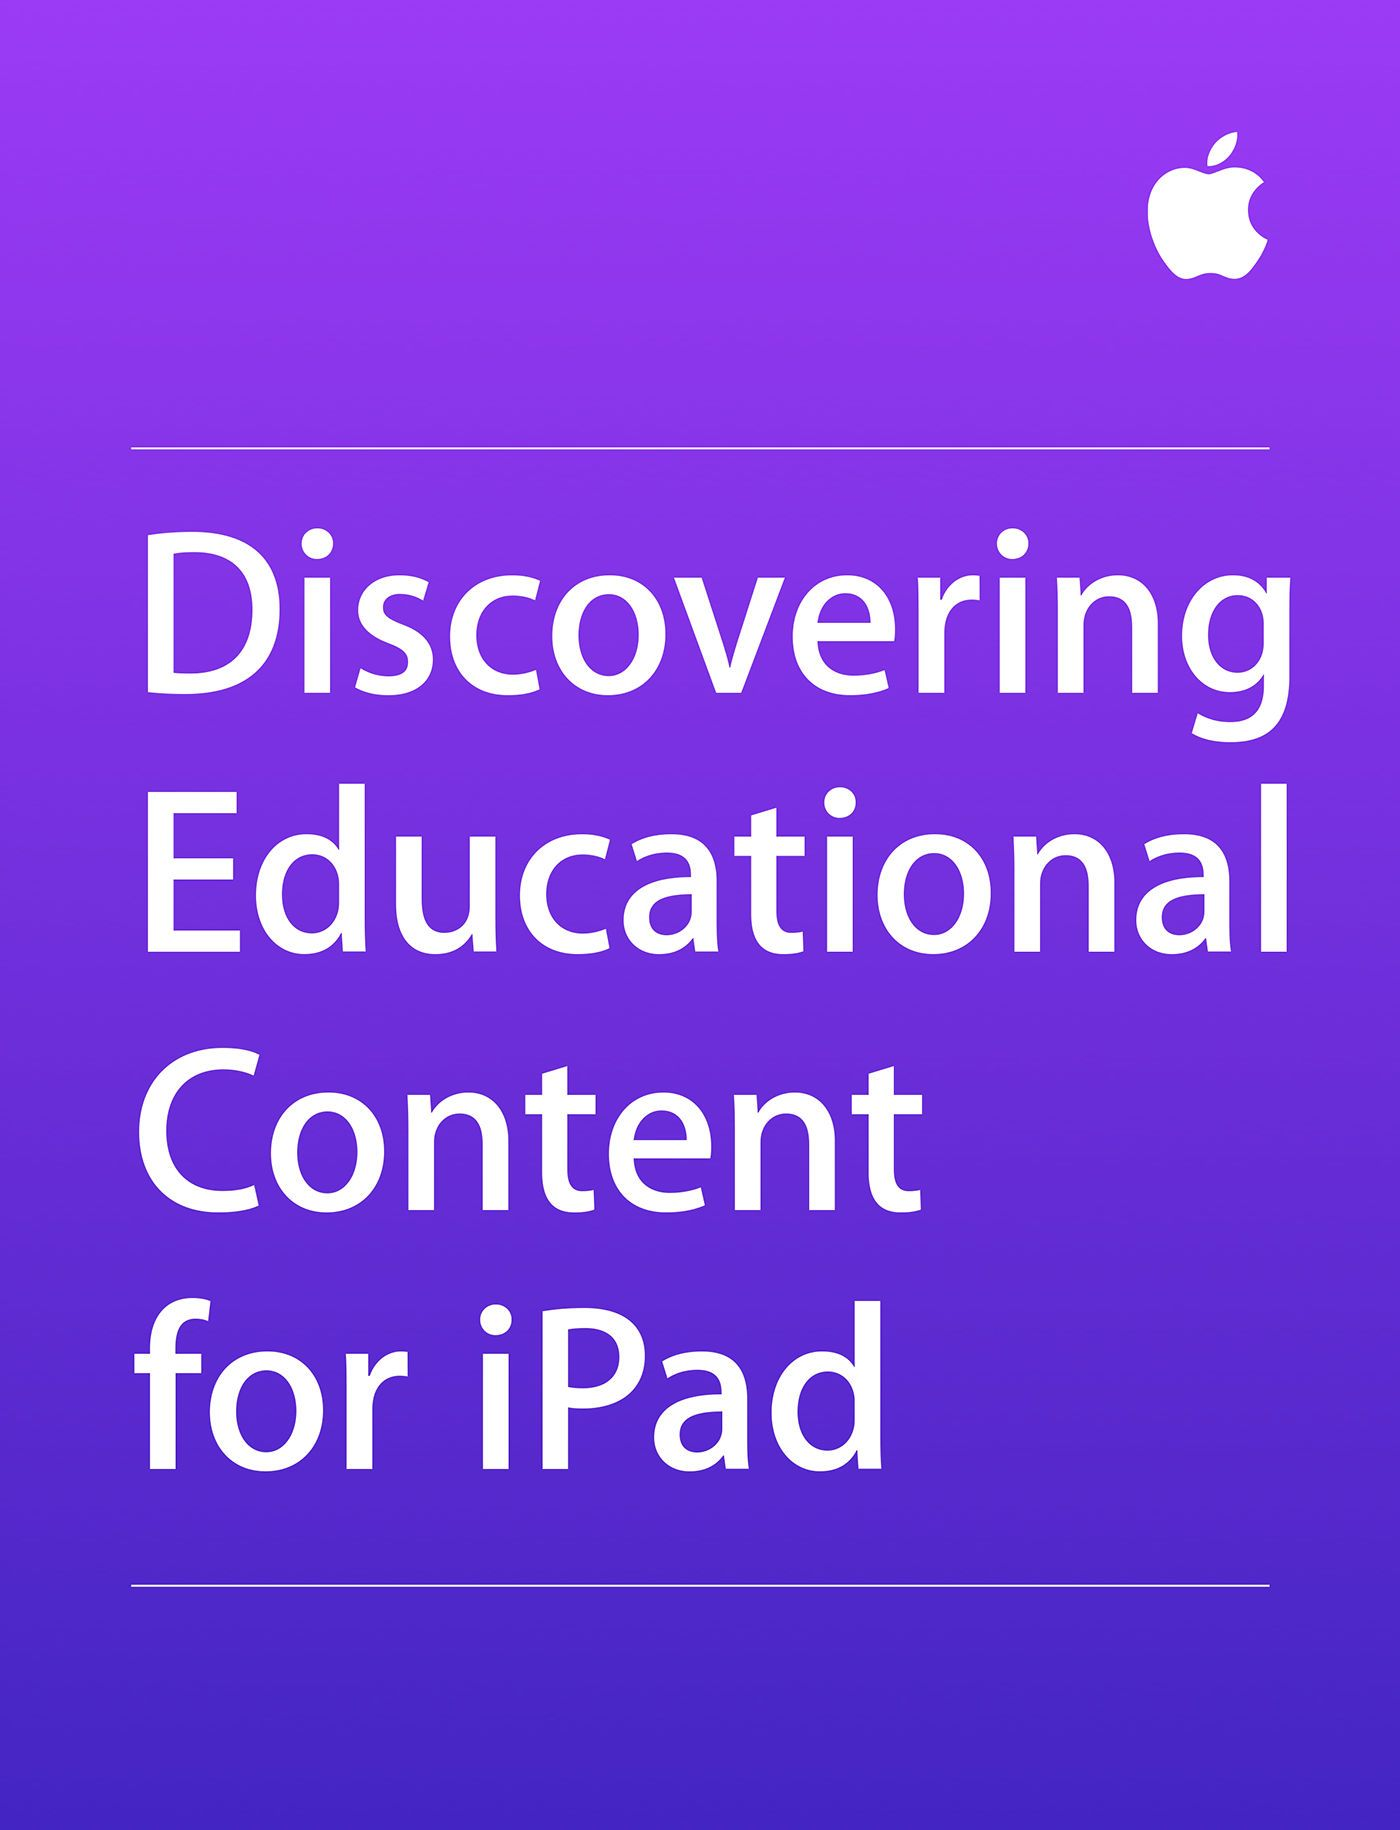 Read a free sample or buy Discovering Educational Content for iPad by Apple Education. You can read this book with iBooks on your iPhone, iPad, iPod touch, or Mac.